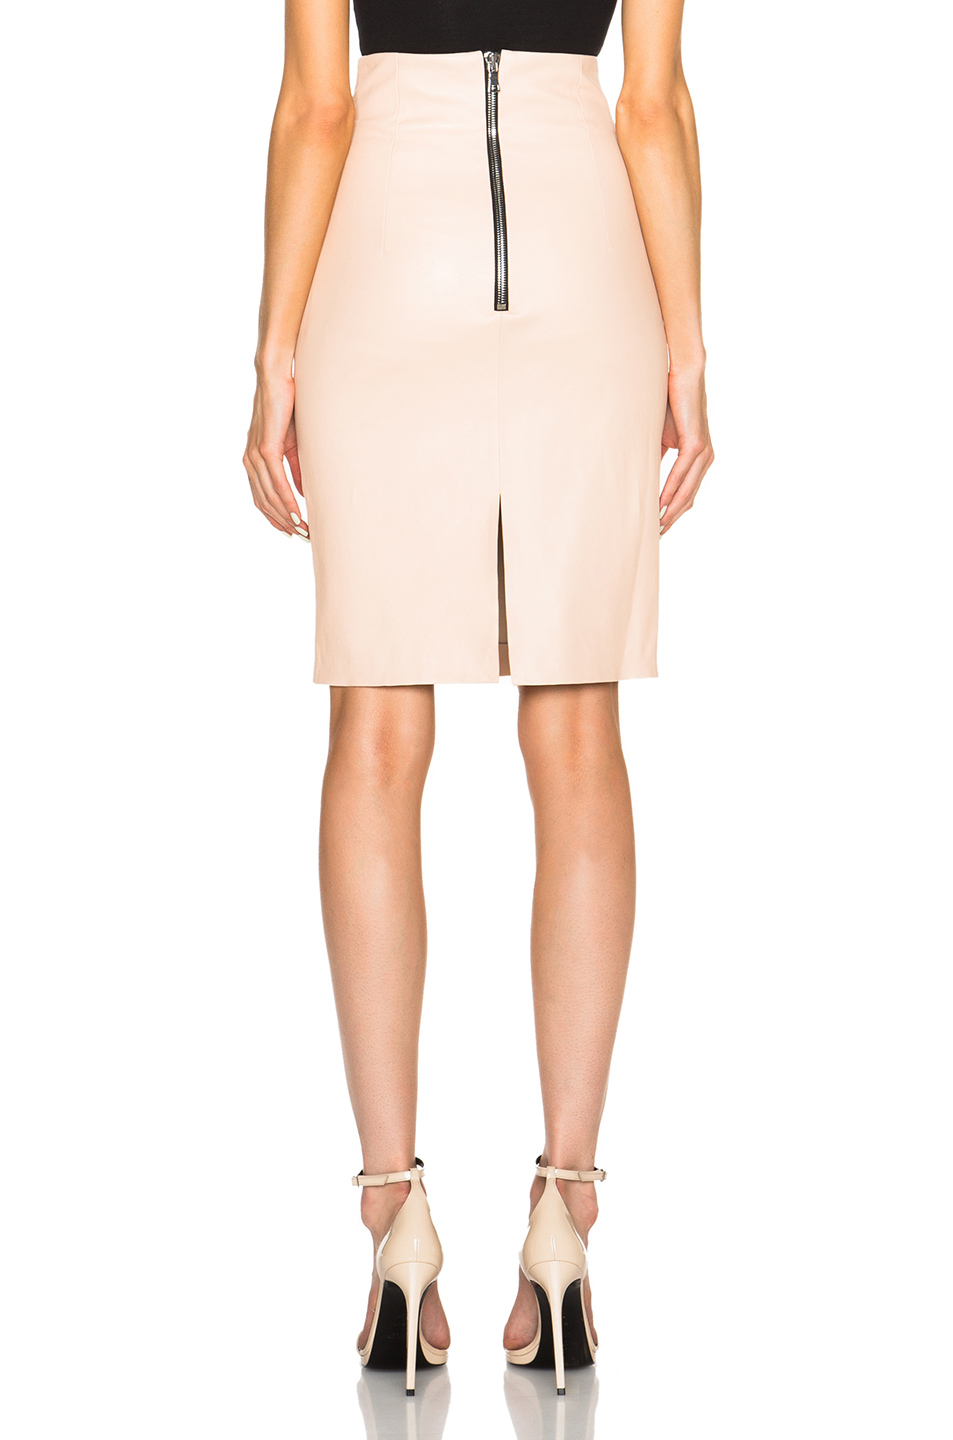 theperfext amsterdam stretch leather skirt in beige camel